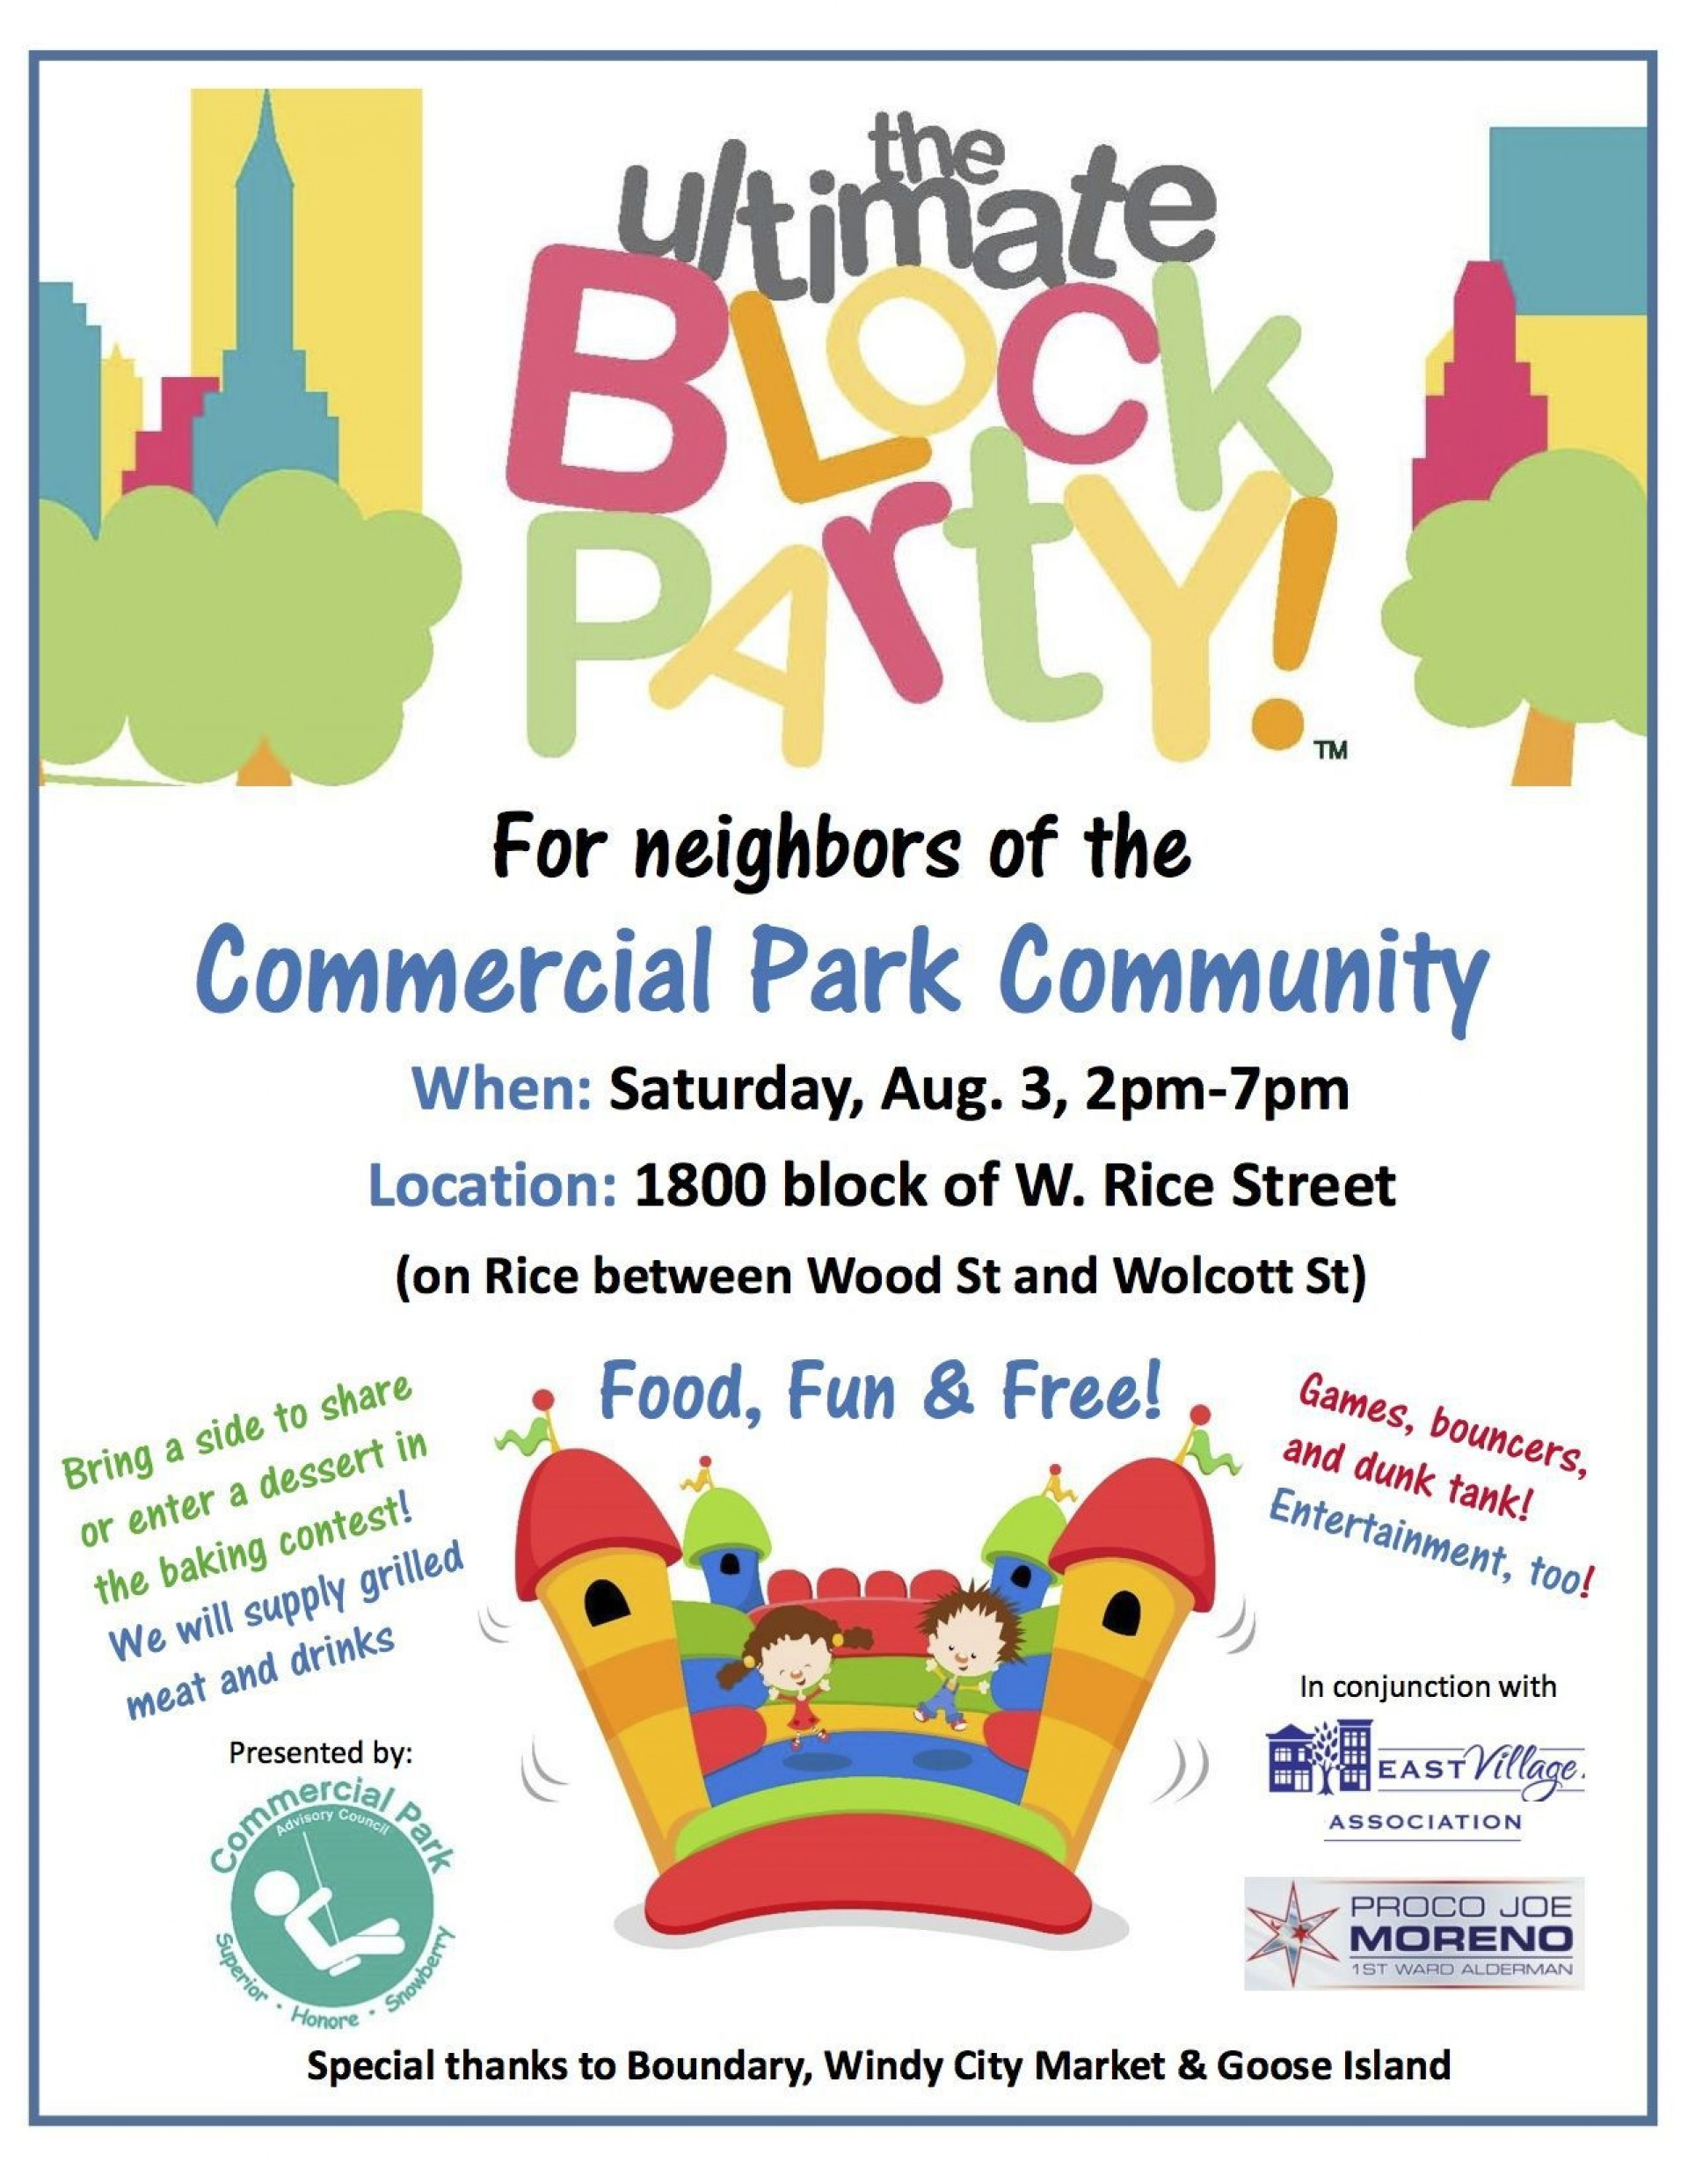 004 Awful Block Party Flyer Template Sample  Templates Free1920